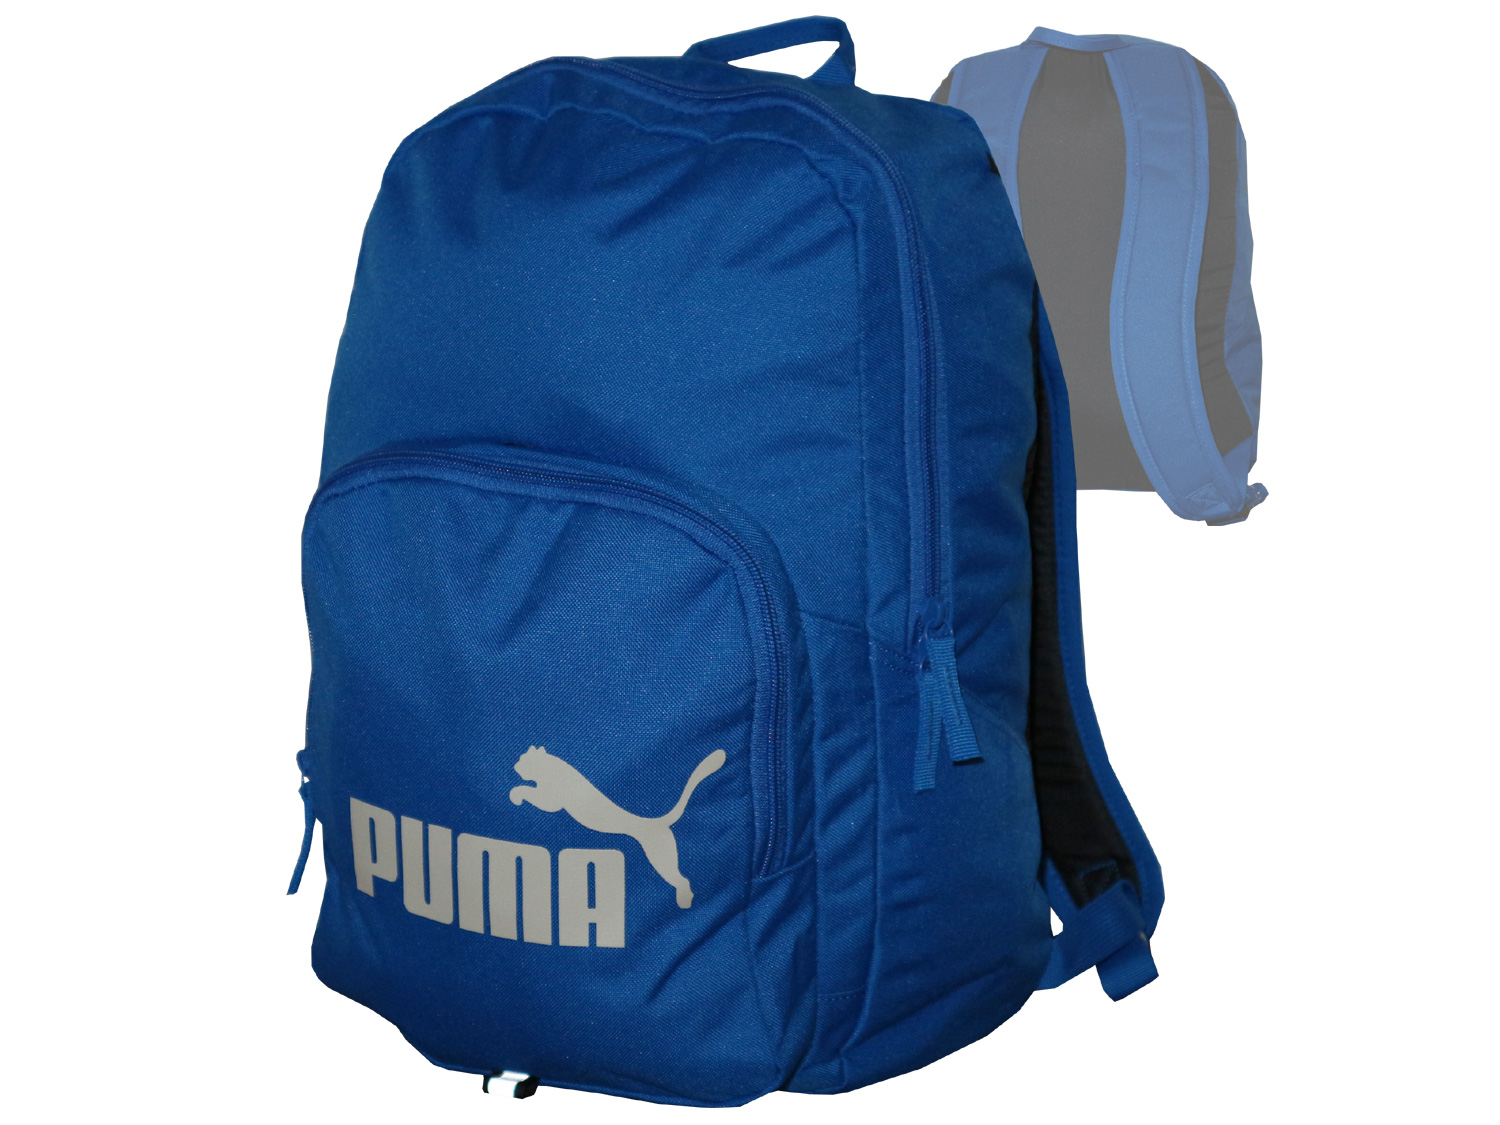 Puma Phase Backpack / Rucksack